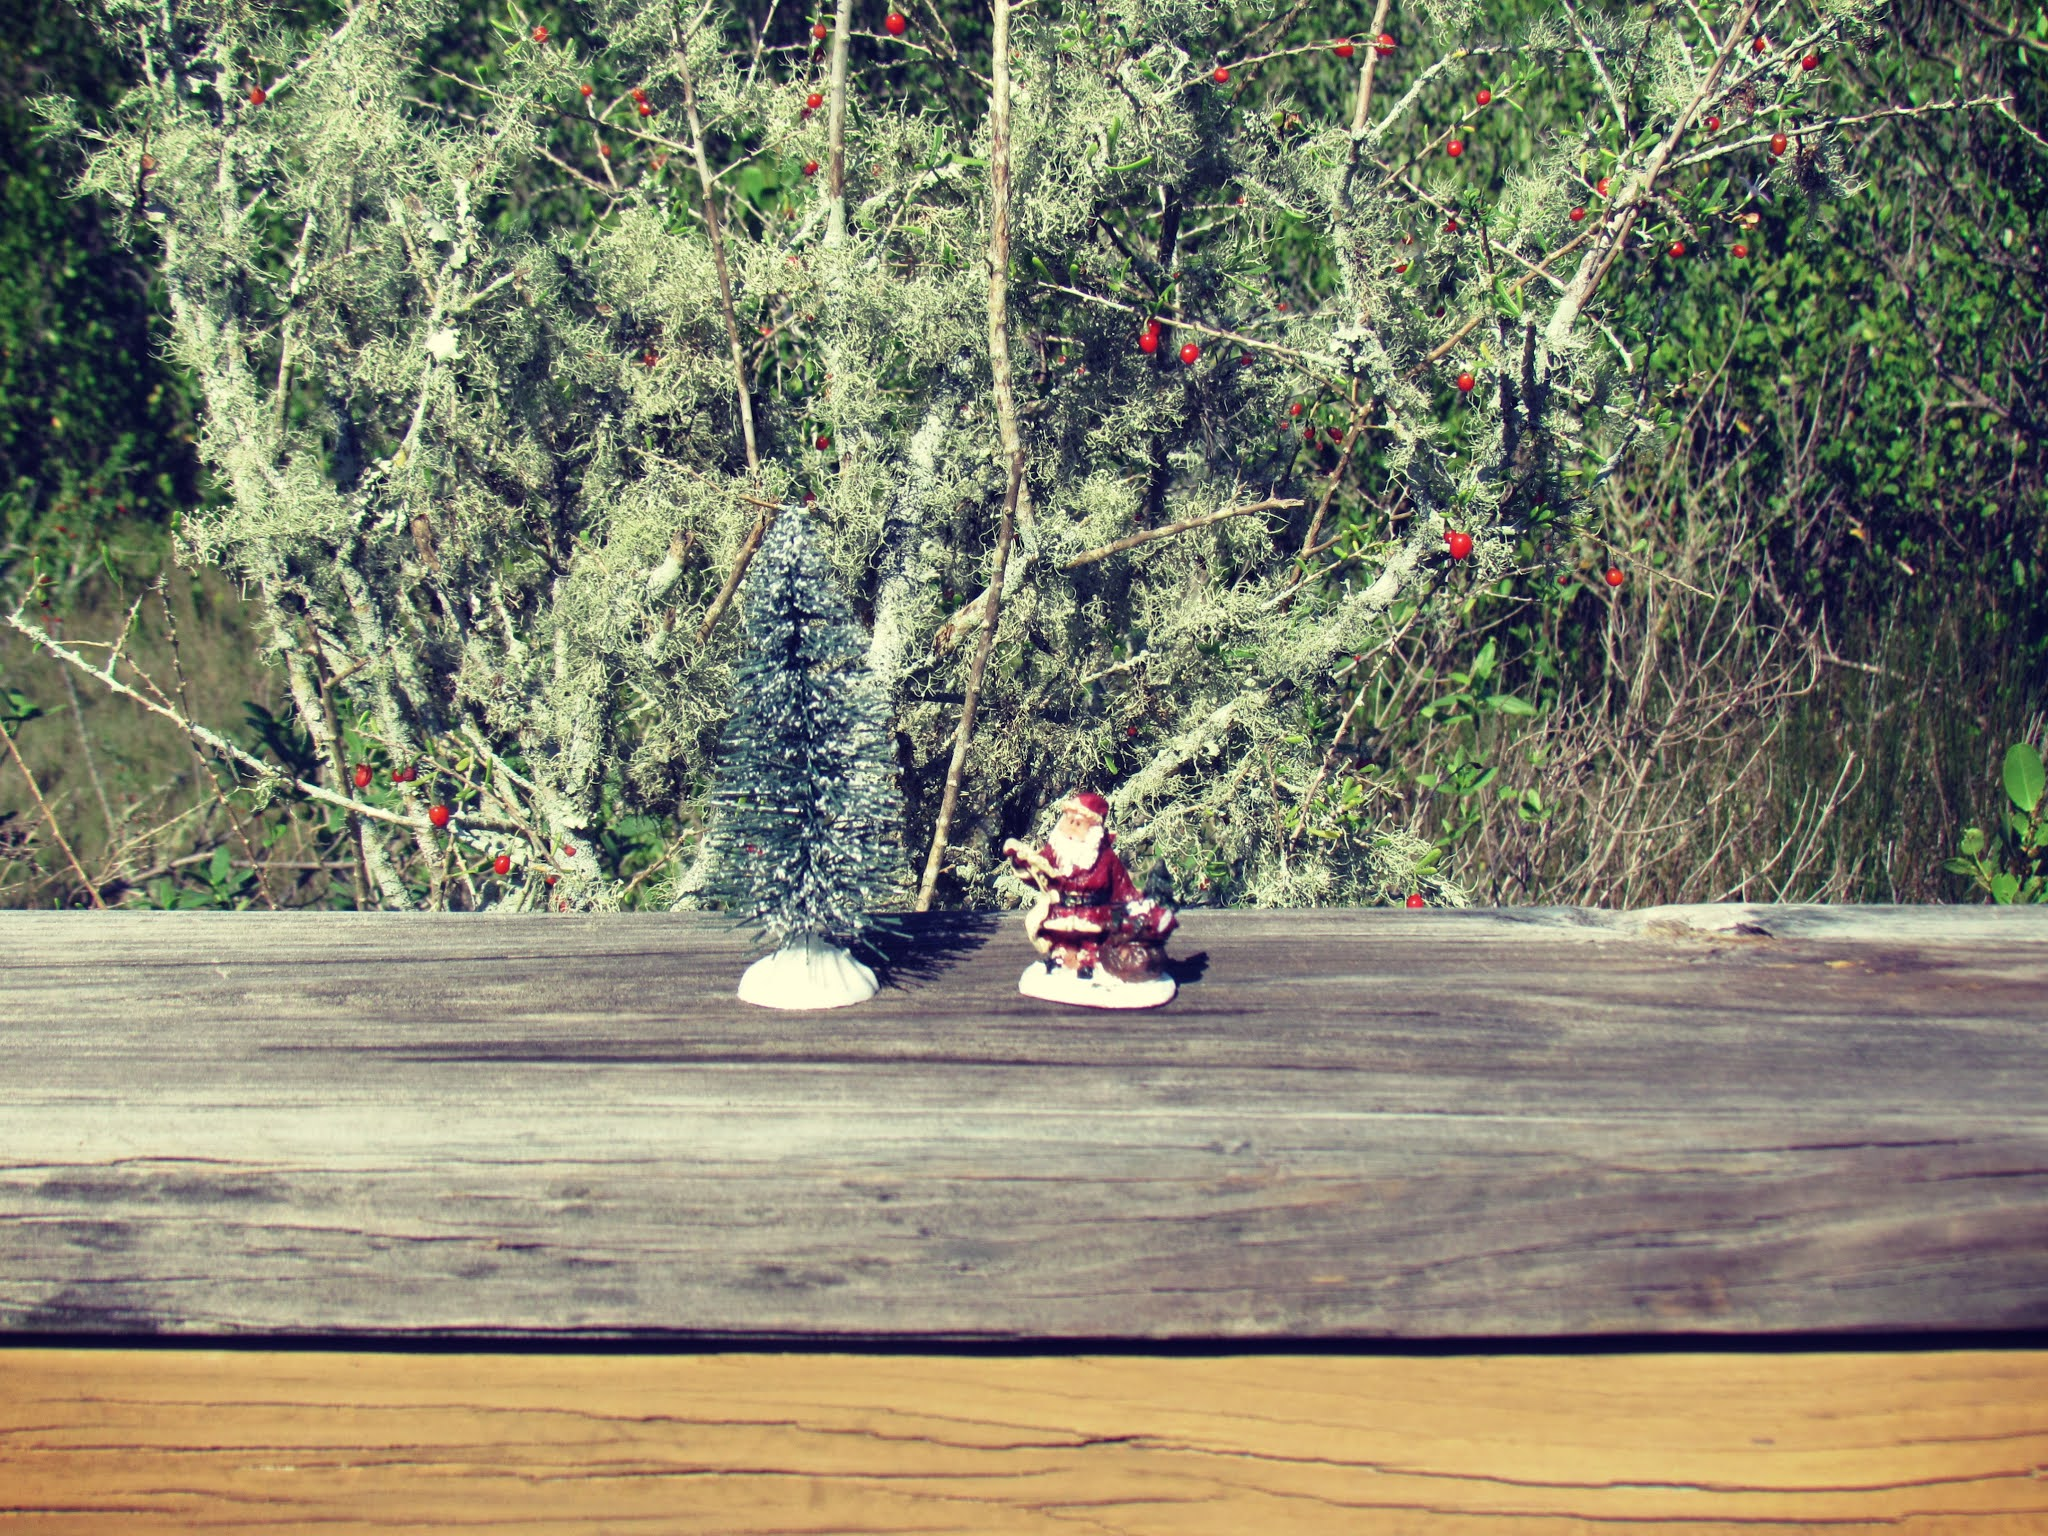 Holiday plants and Christmas wreathes, holiday planters, Christmas figurines found in nature